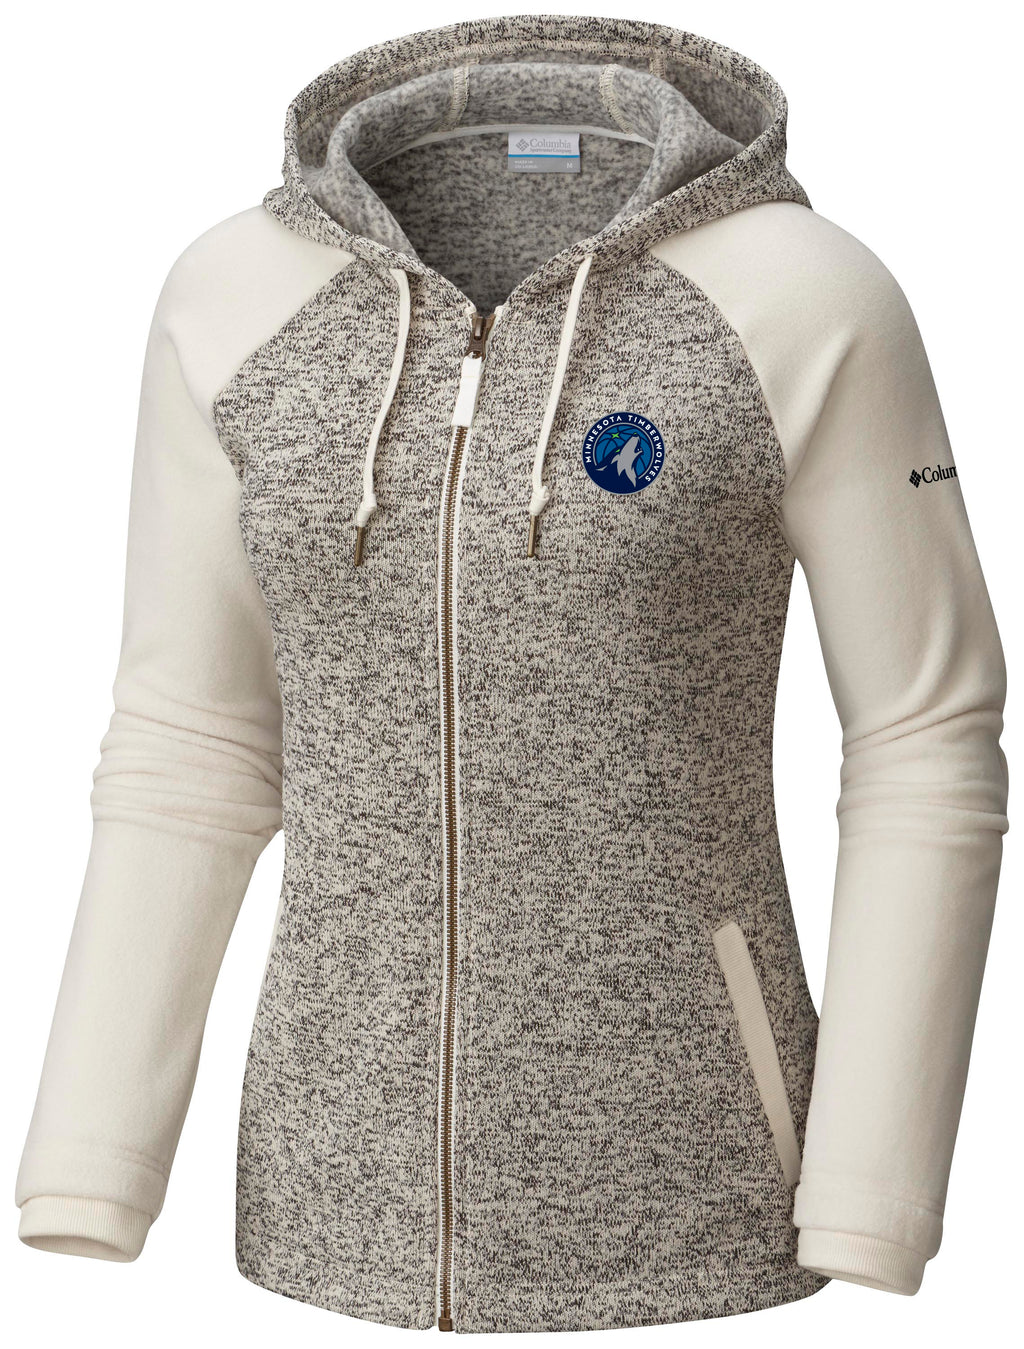 Minnesota Timberwolves Women's Darling Day Full Zip Hoodie - Timberwolves Team Store